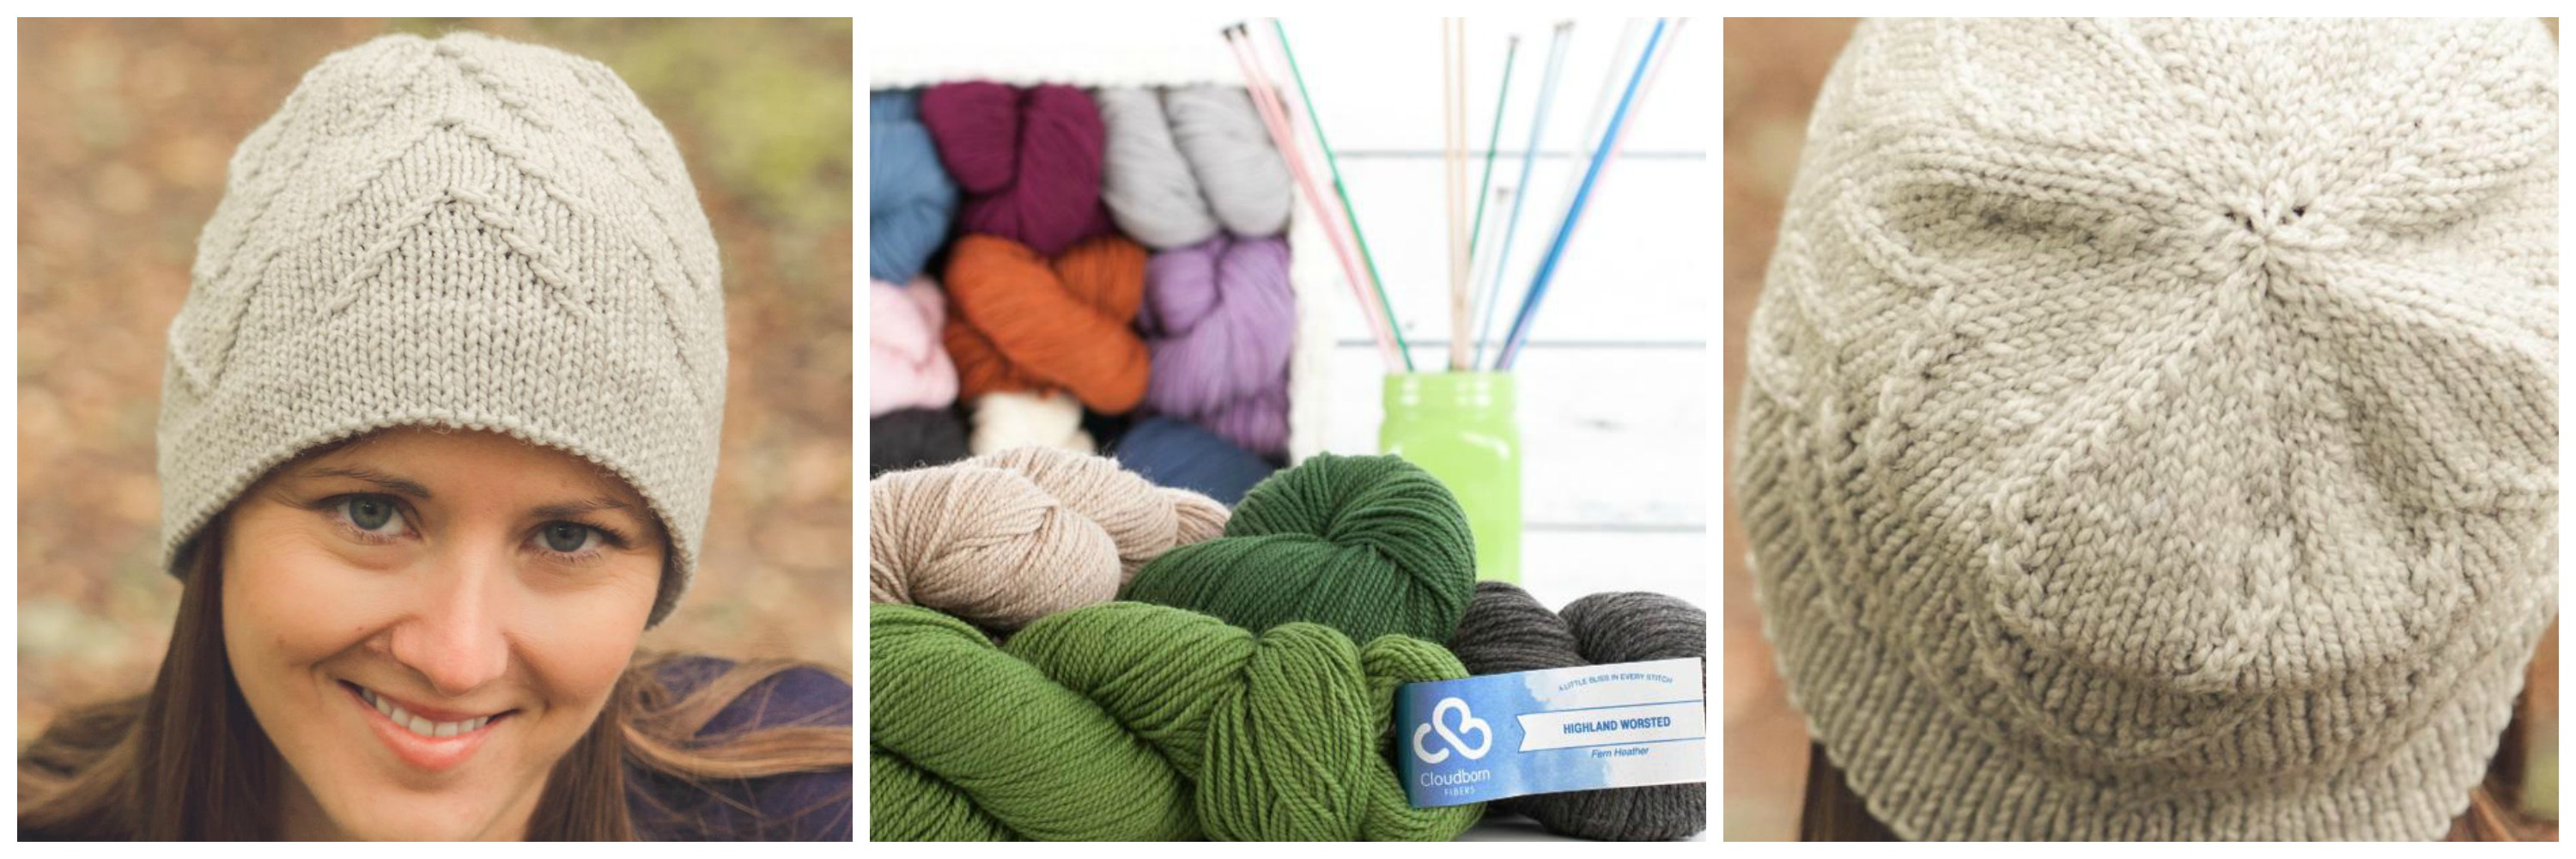 selection of yarn and woman wearing knit hat